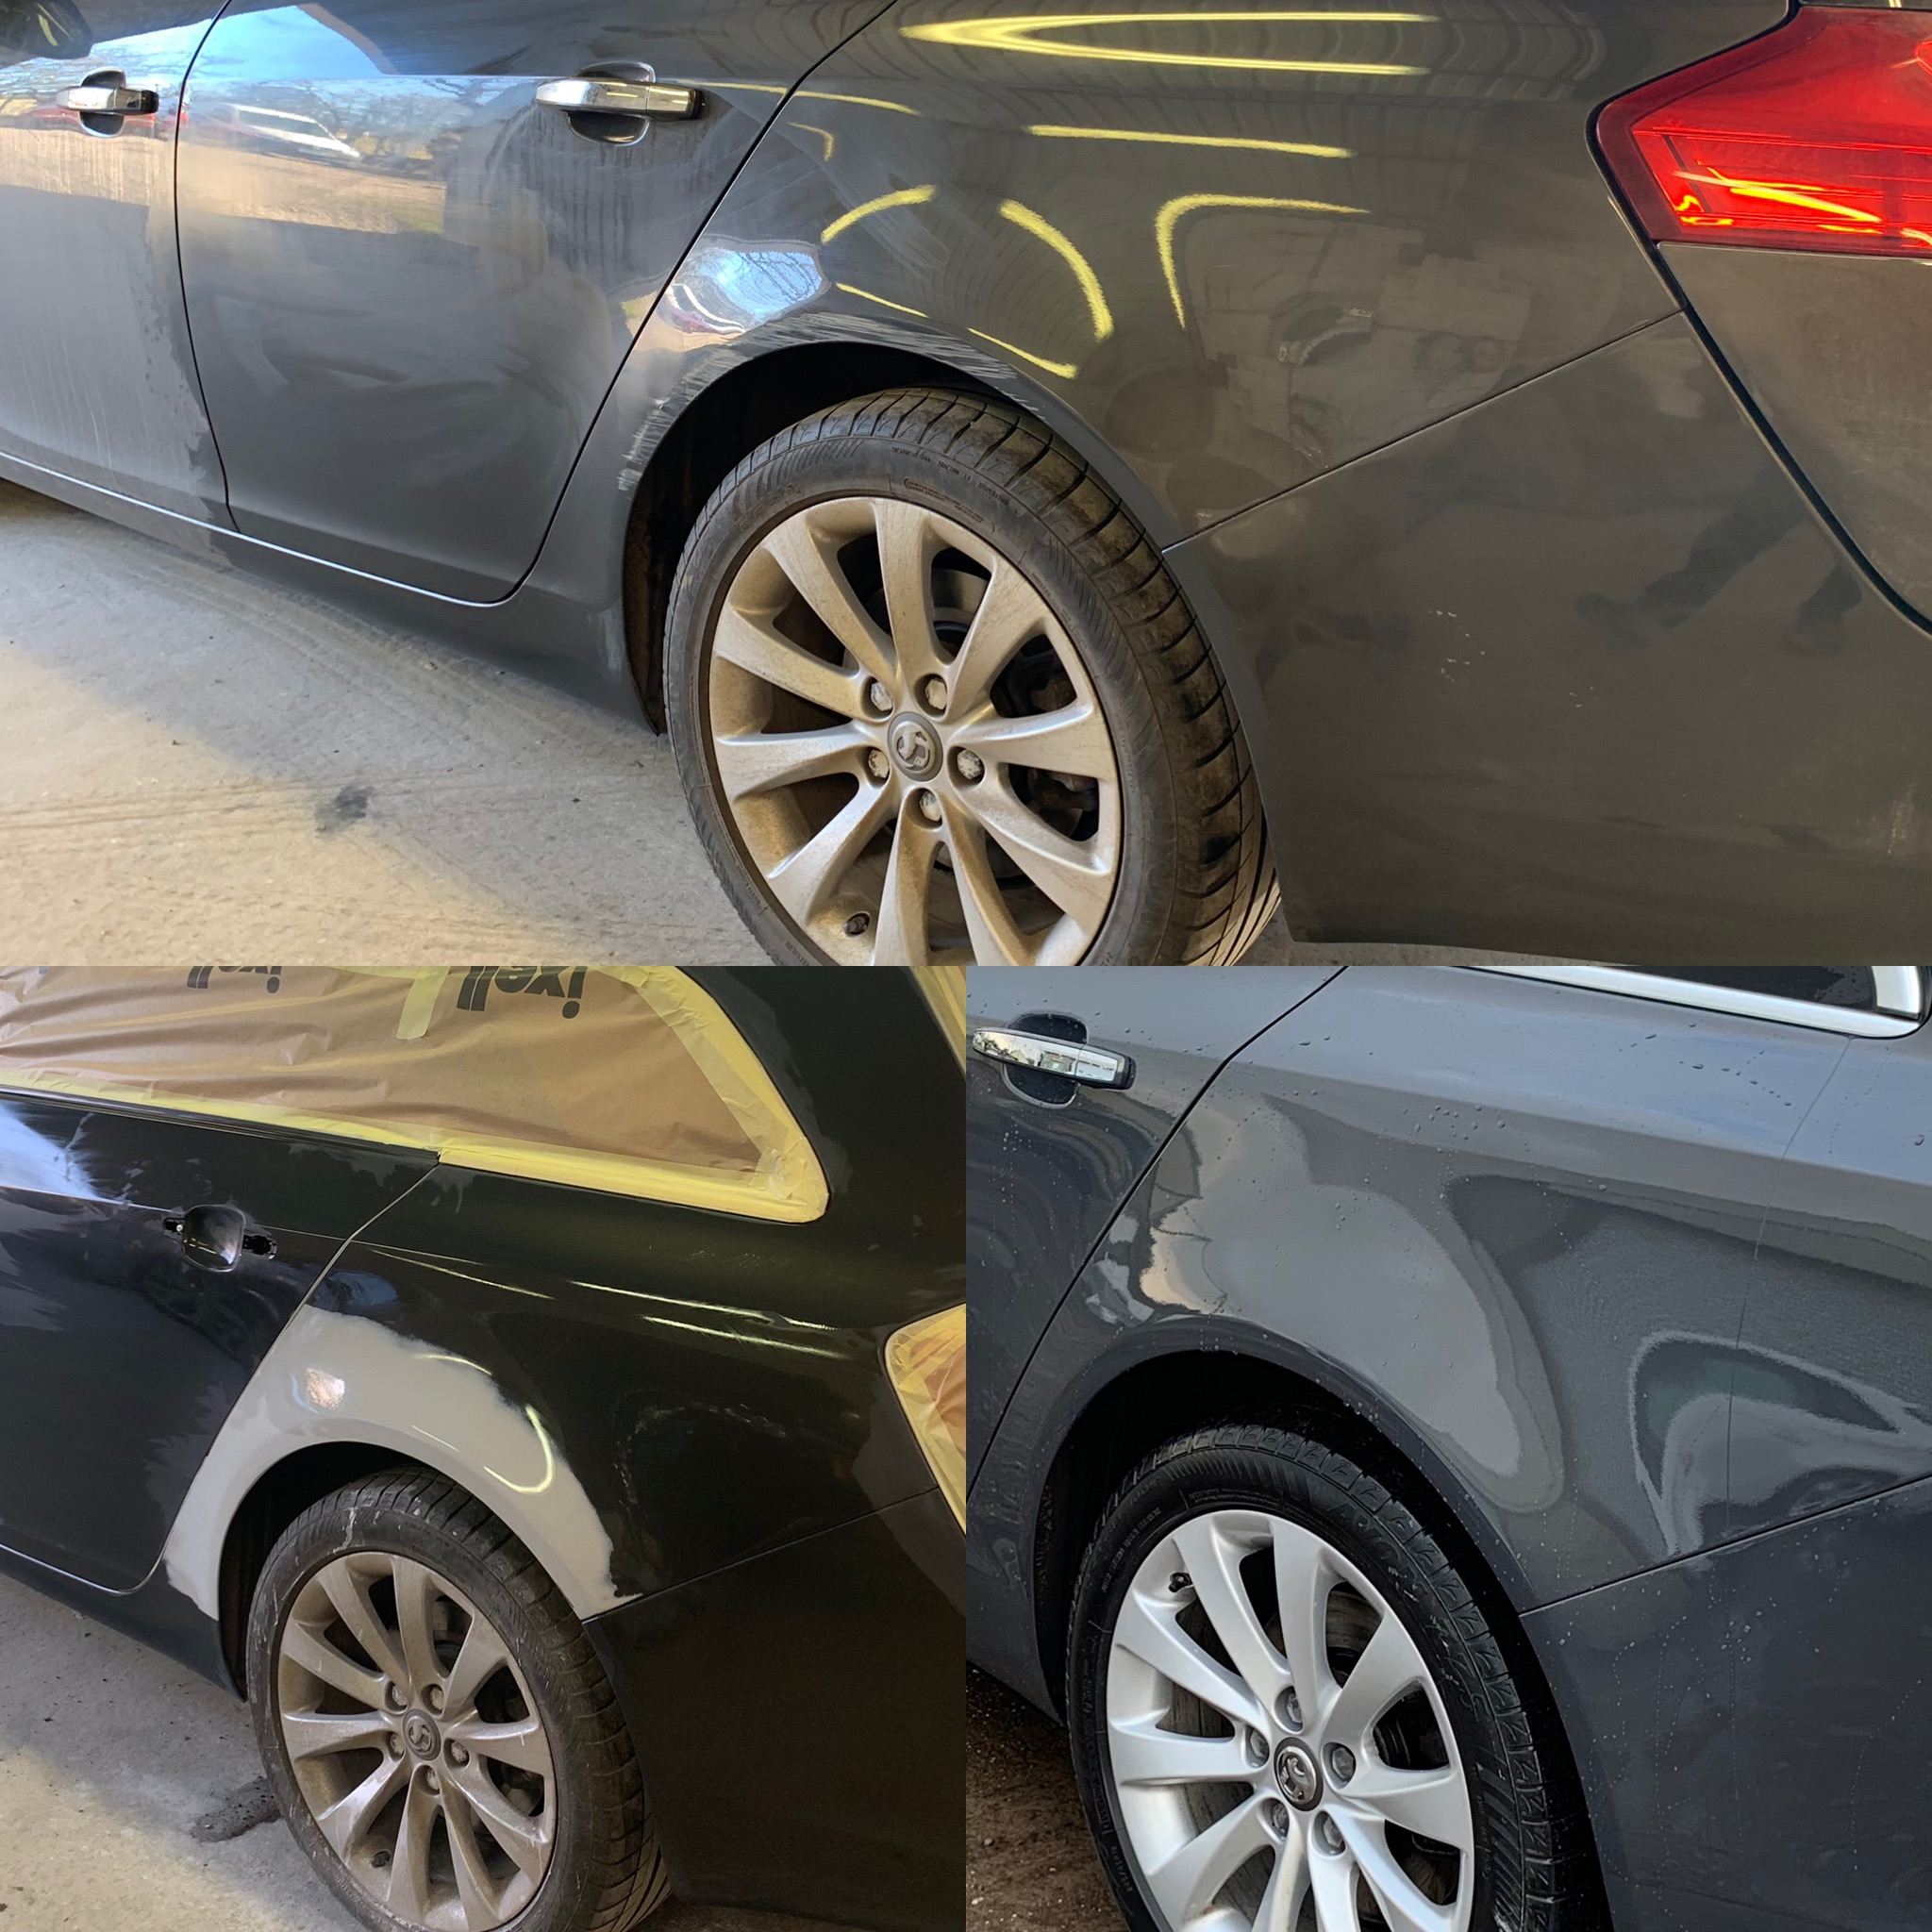 Dent Repair At BodyTech Solihu